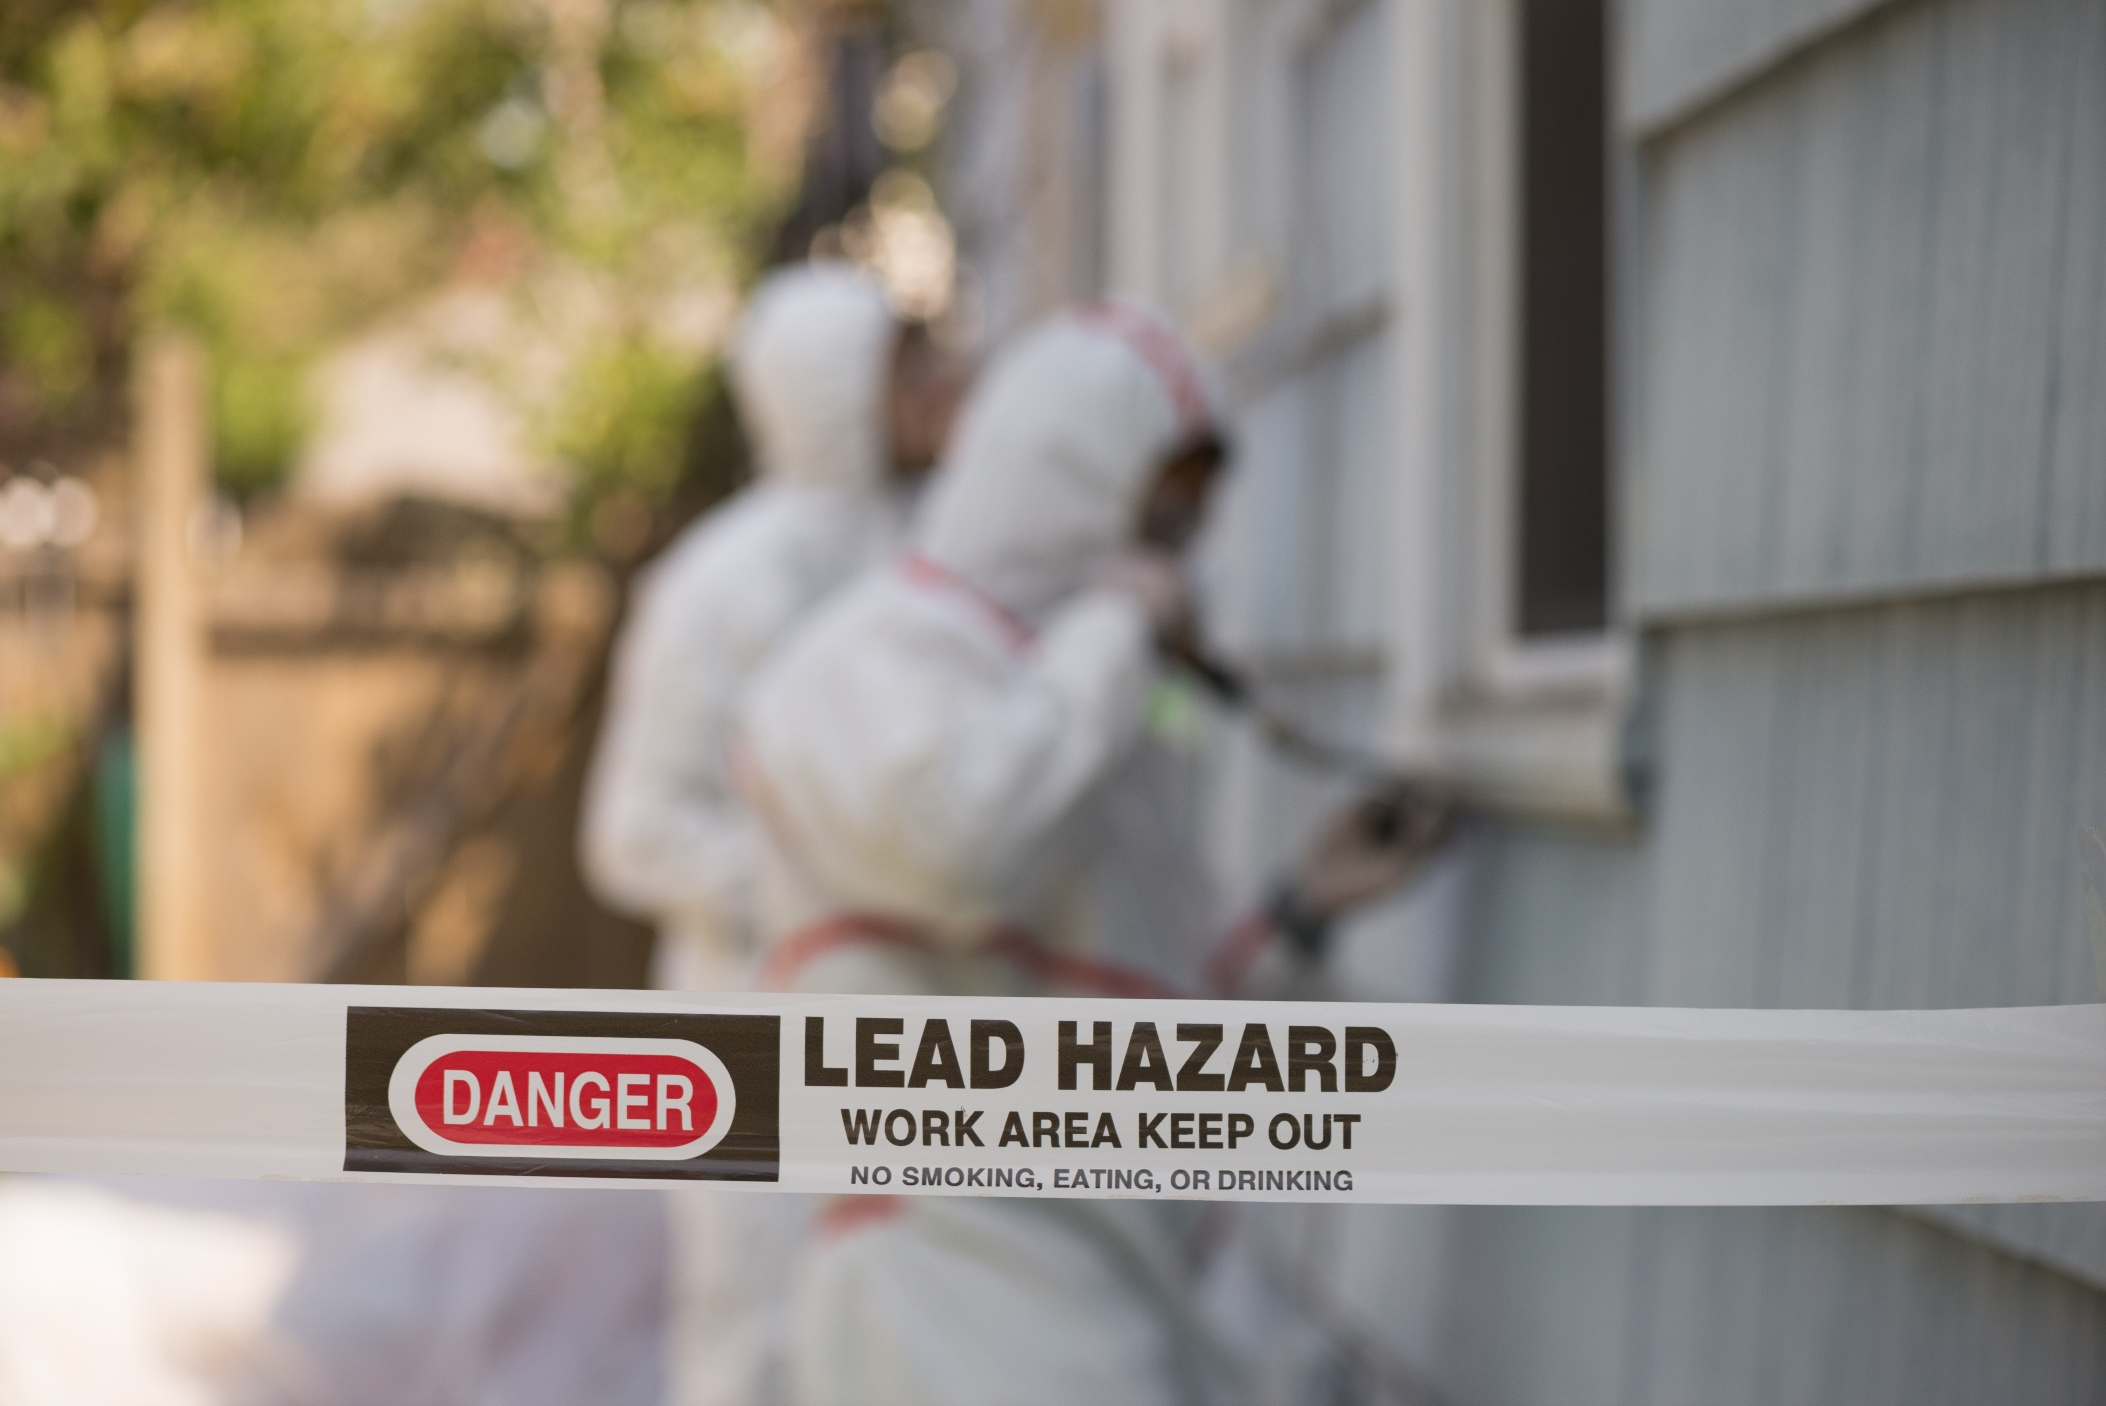 """Workers in hazmat suits stripping old paint from a house. Caution tape in the foreground warns: """"Lead Hazard."""""""